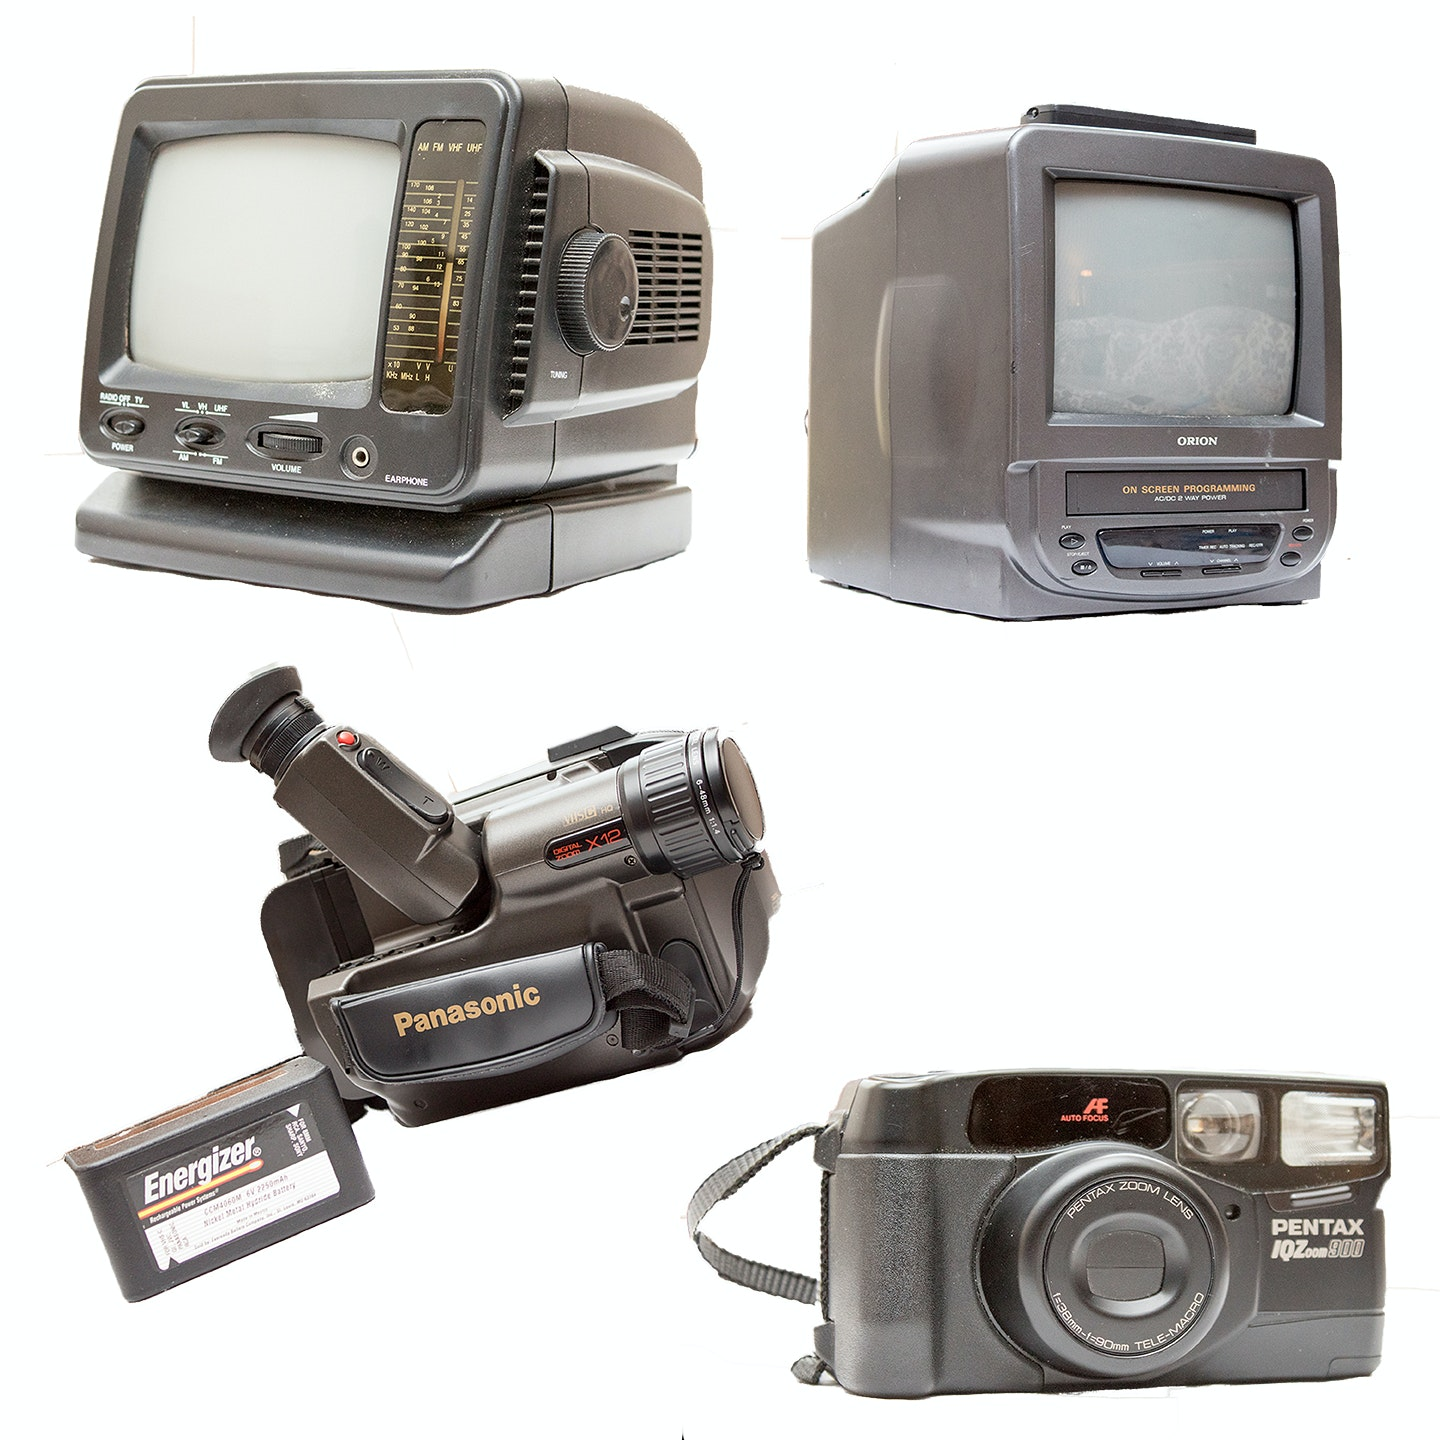 Mini Televisions, Pentax Vintage Camera and Panasonic Video Camera